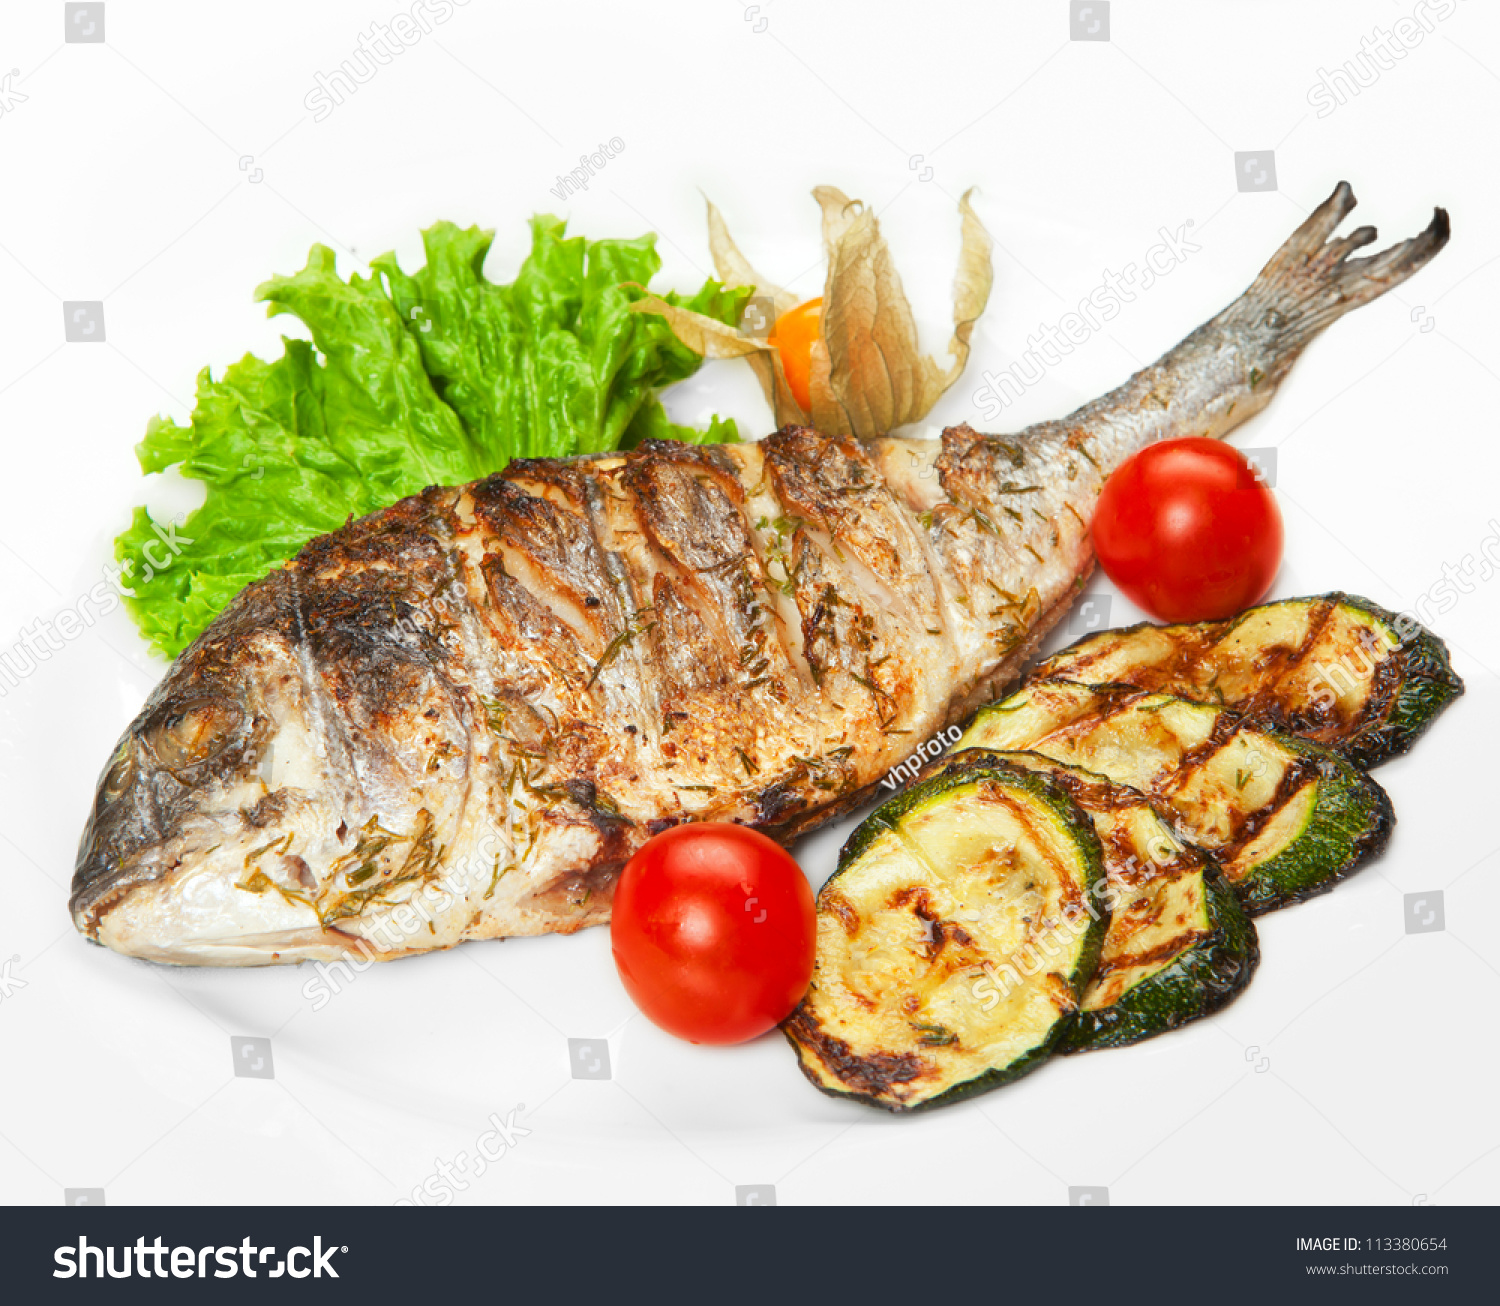 Grilled fish with vegetables stock photo 113380654 for Fish with vegetables